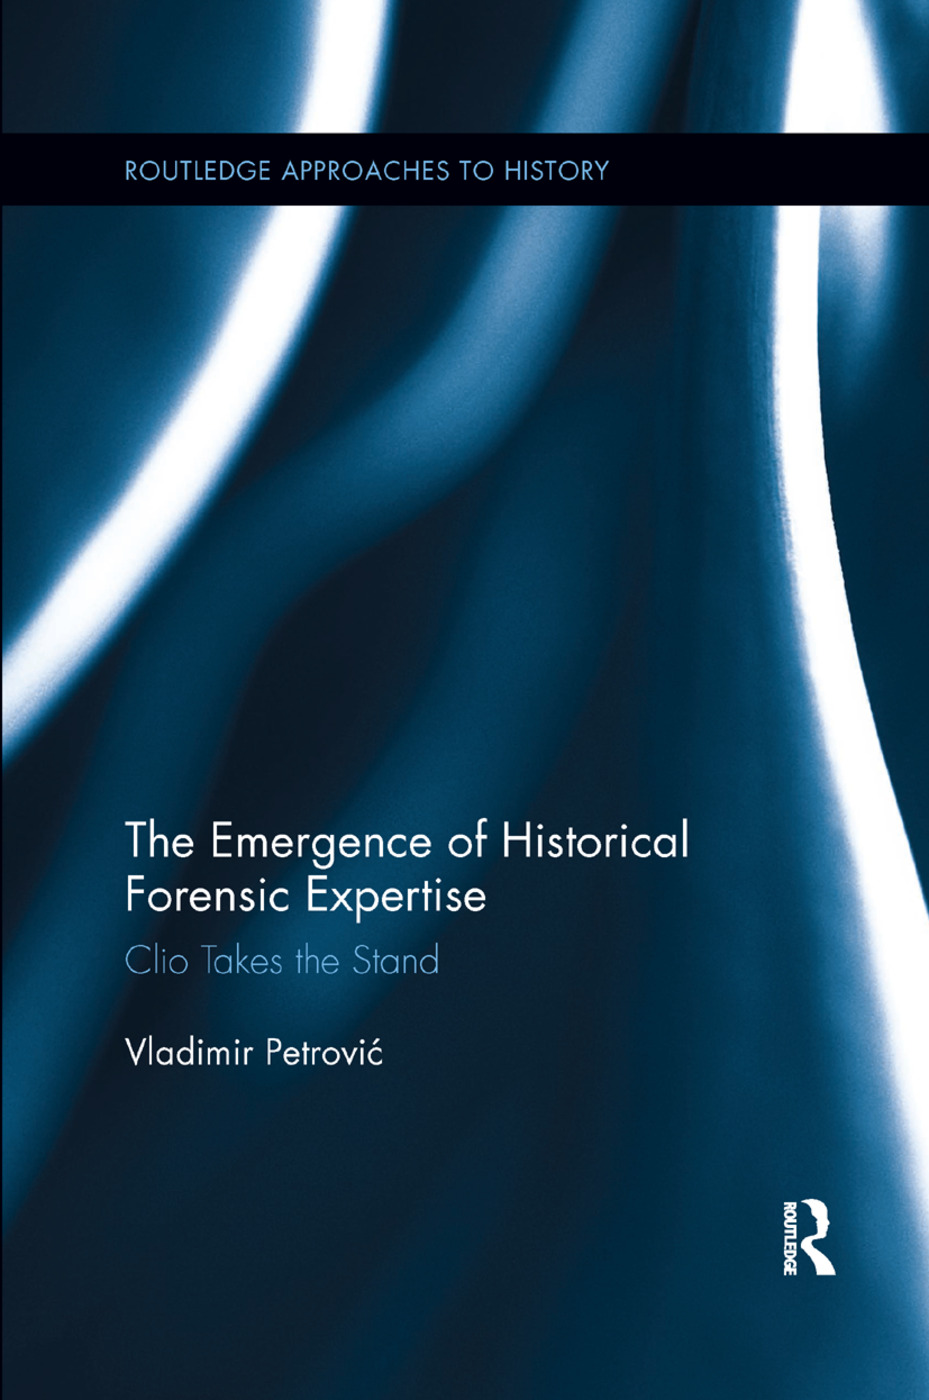 The Emergence of Historical Forensic Expertise